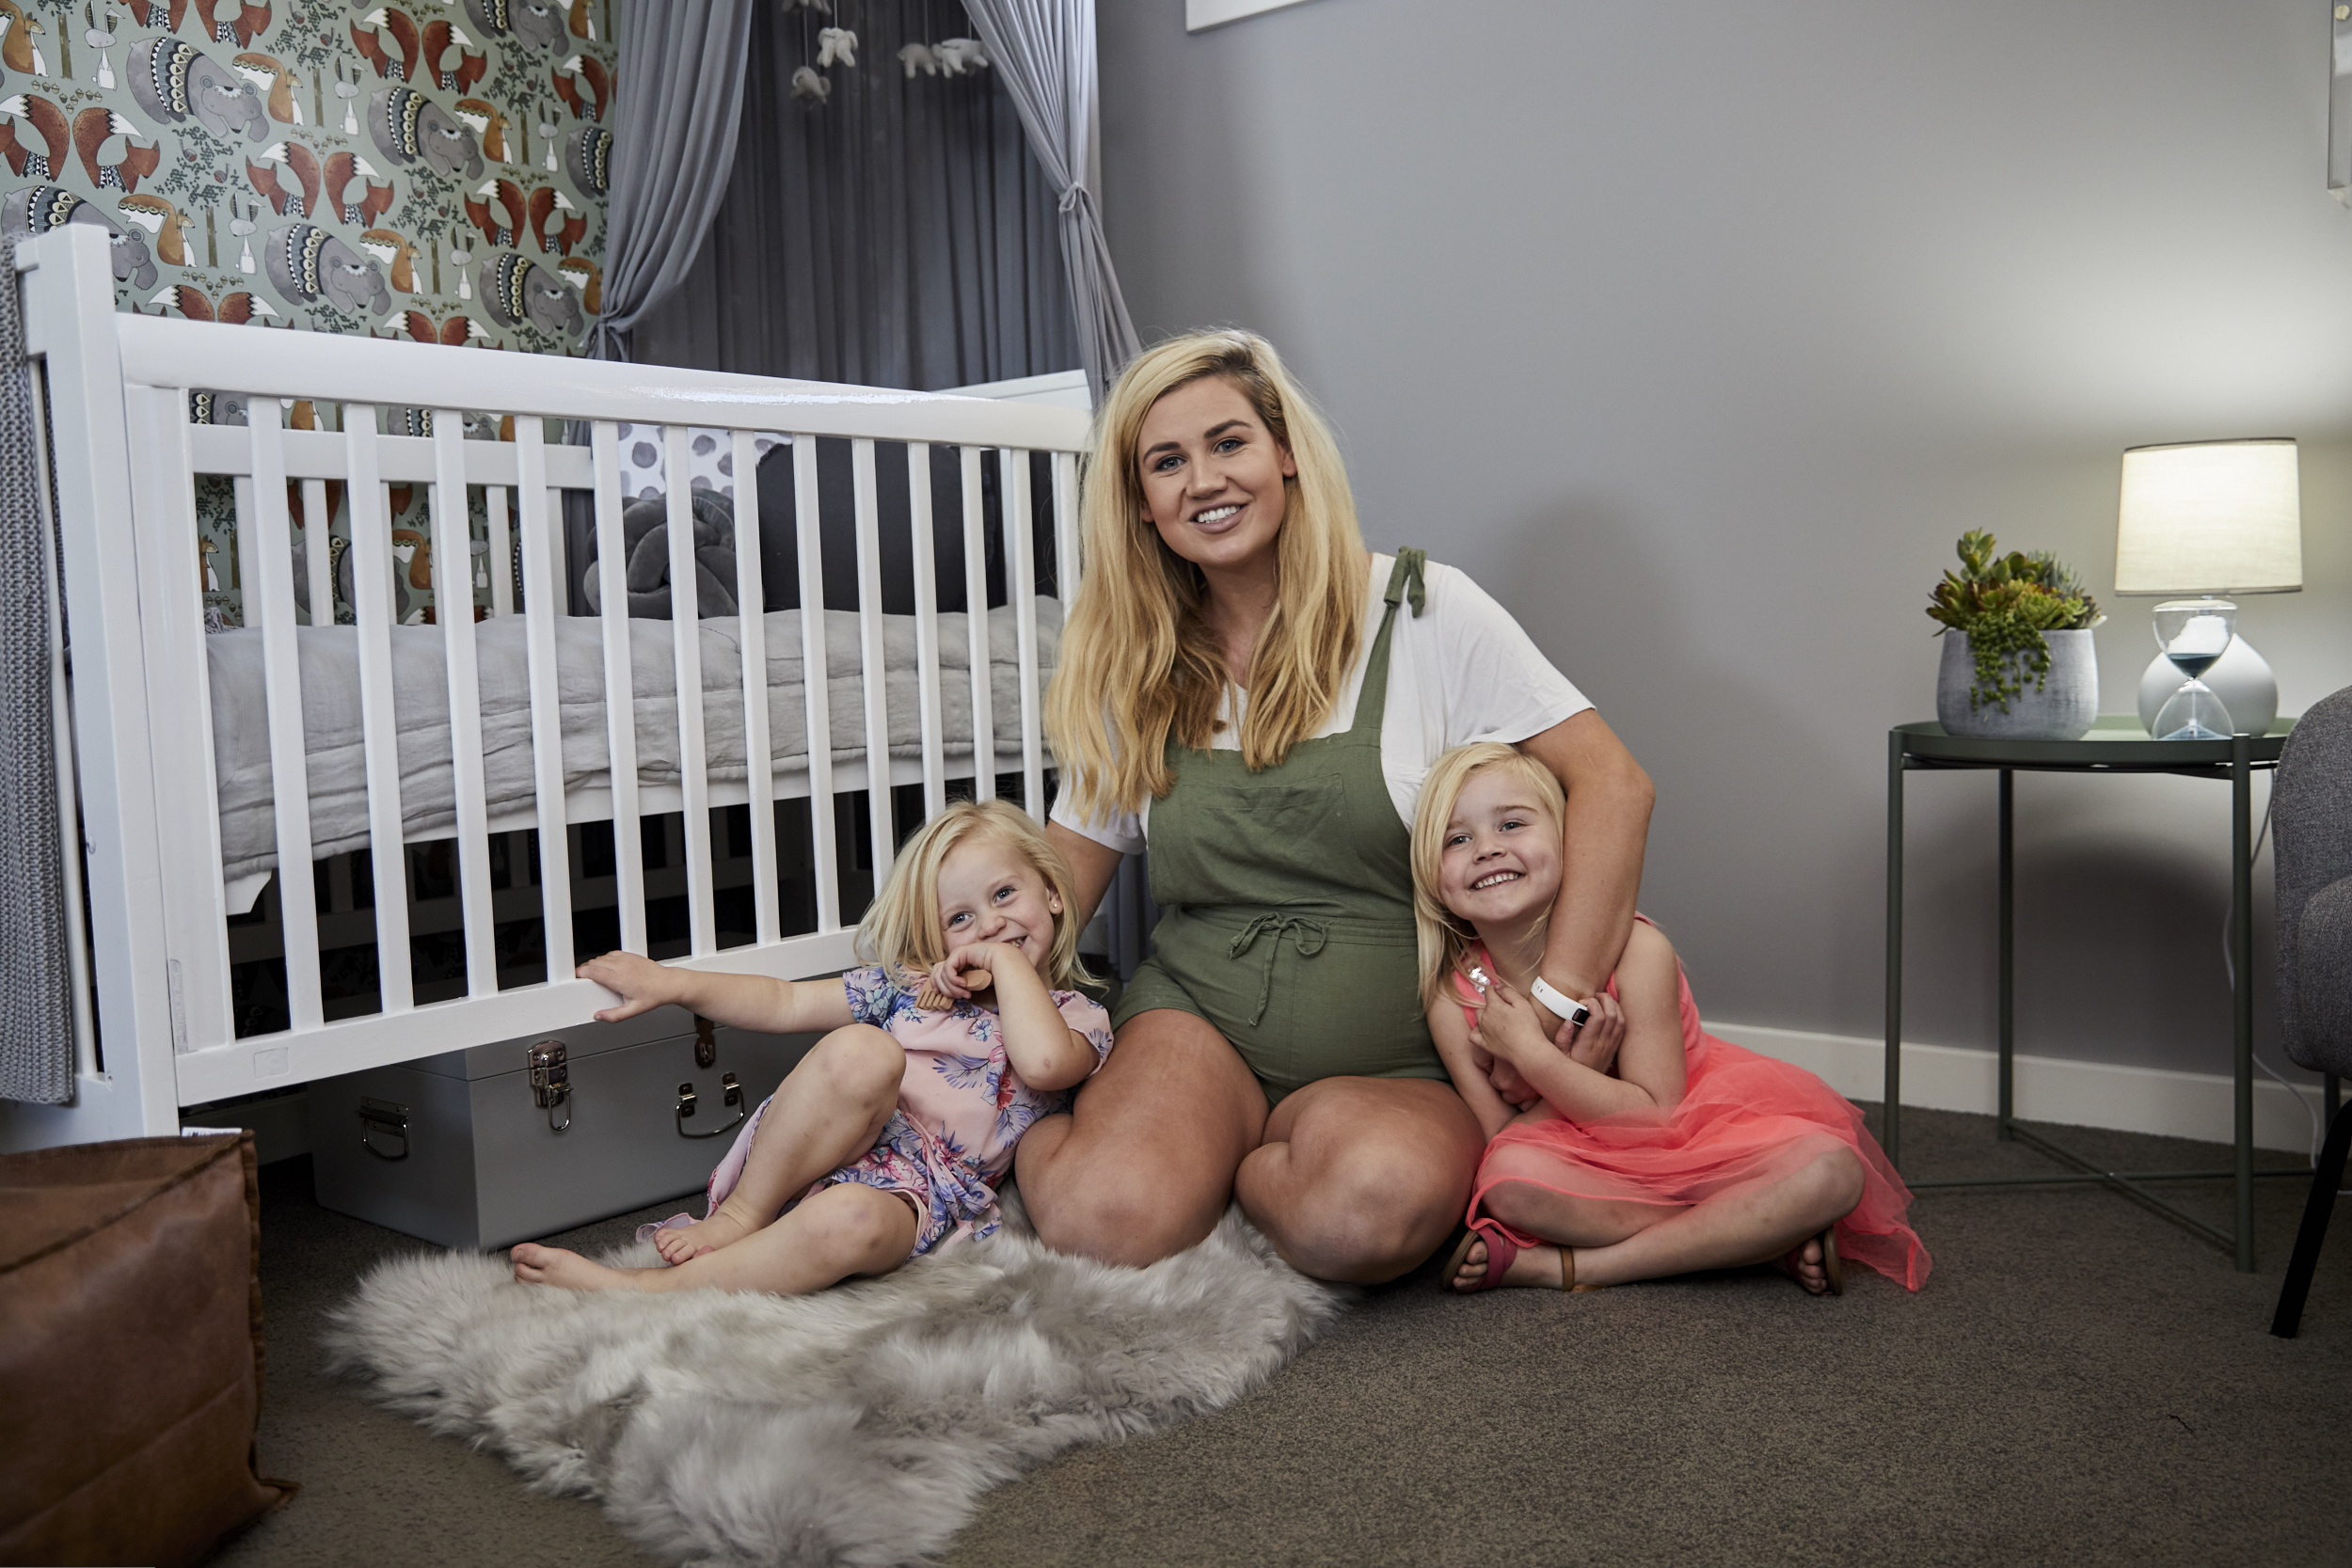 Abby Gilmore and daughters at their baby nursery room reveal